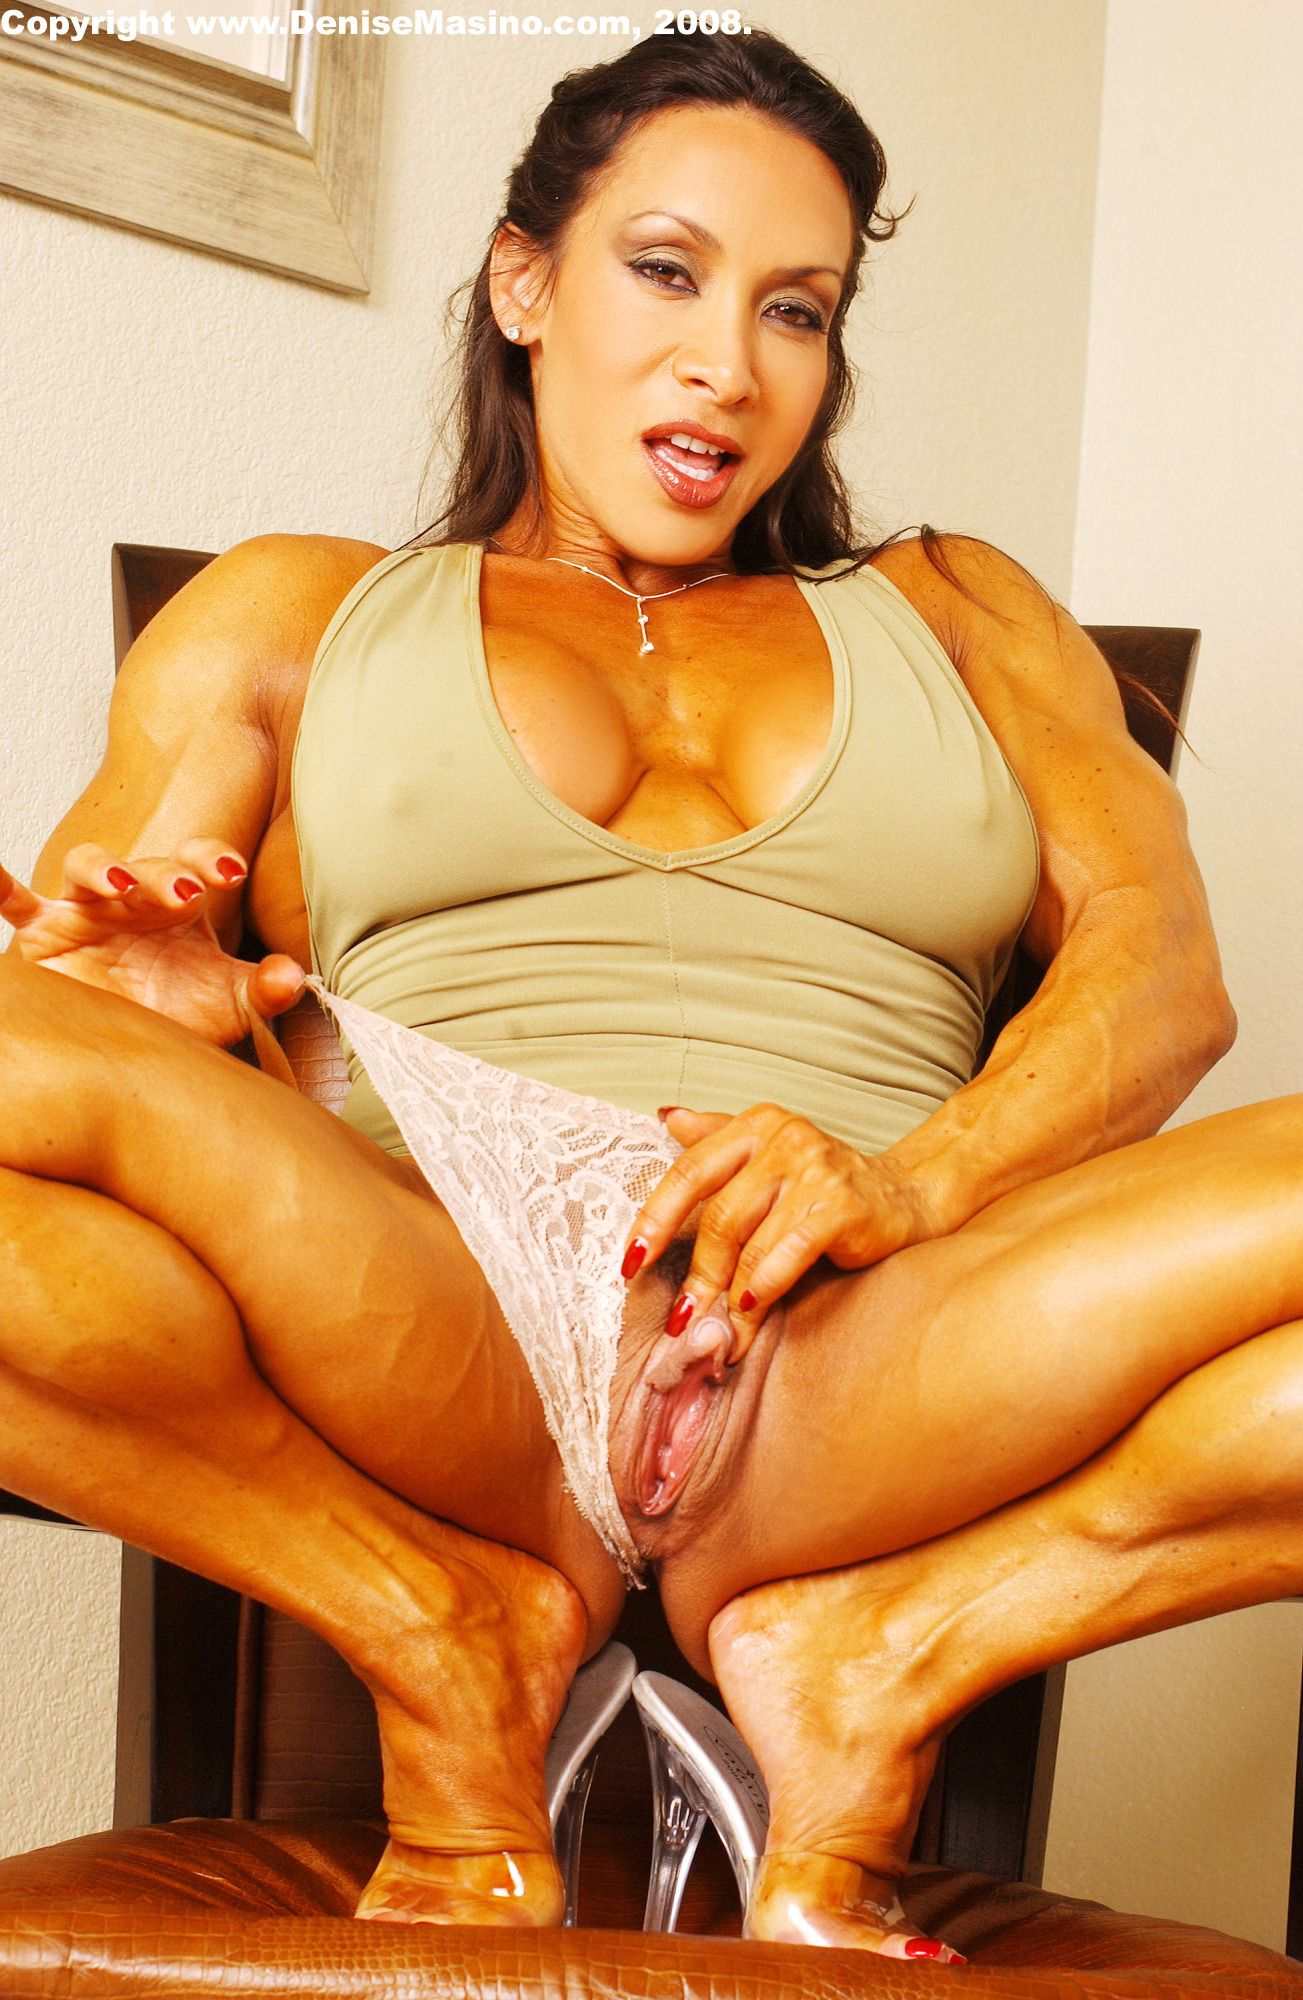 denise-masino-american-indian-porn